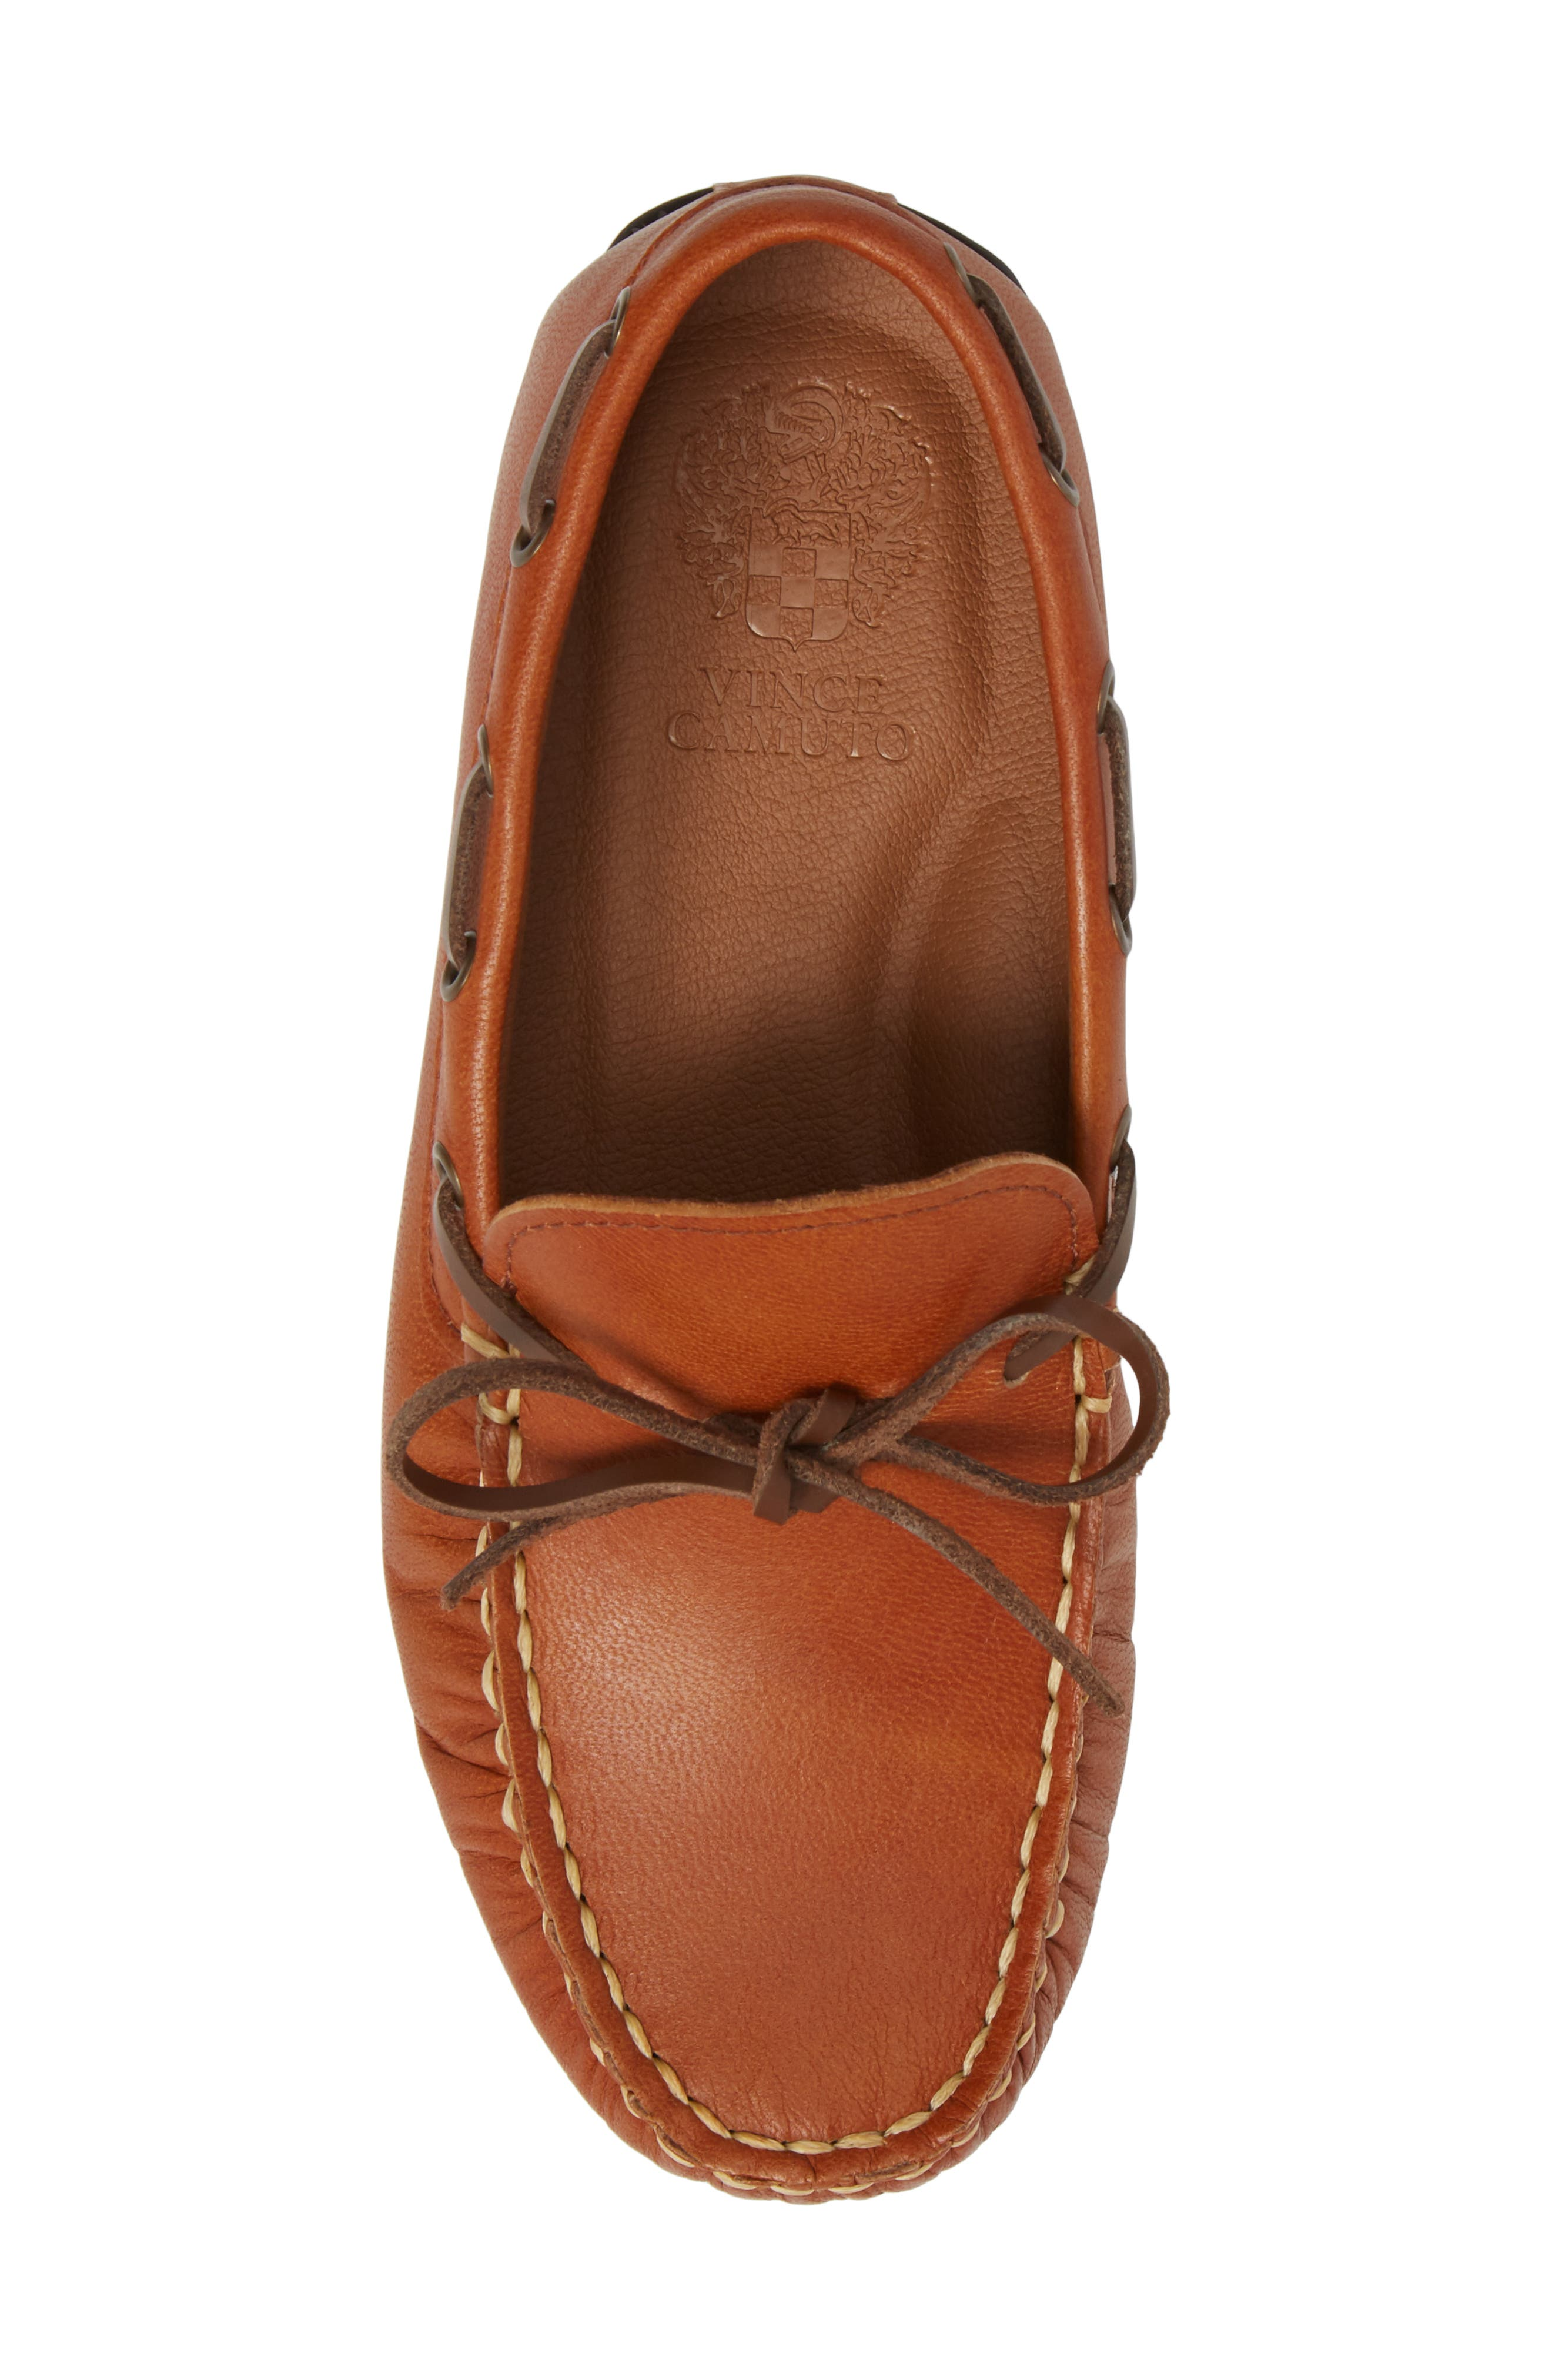 Doile Loafer,                             Alternate thumbnail 5, color,                             Naturale Leather